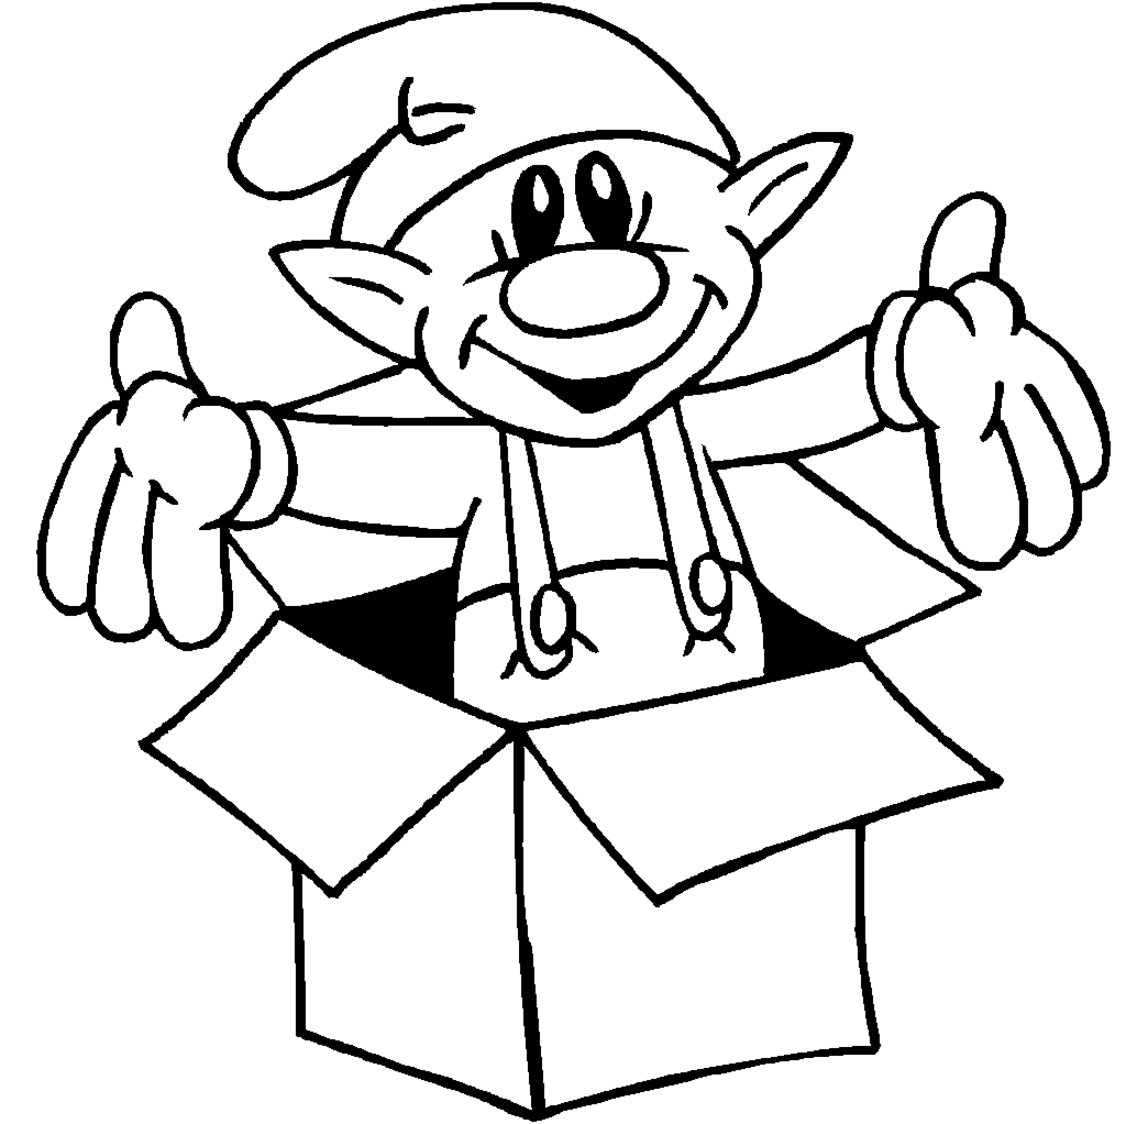 1126x1124 Christmas Coloring Pages Elf Elf Christmas Coloring Pages